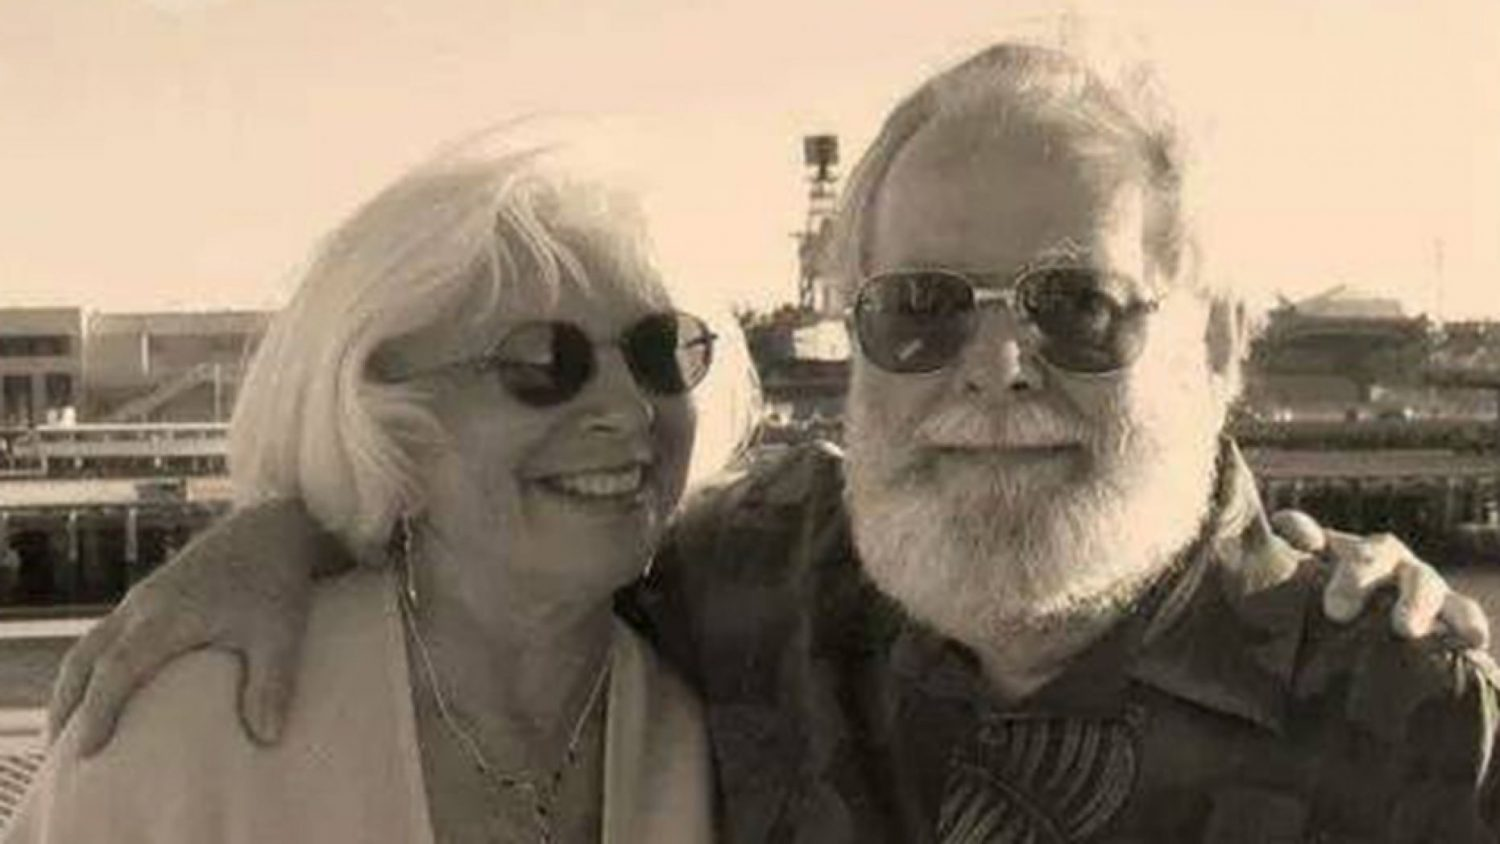 an elderly couple who died in a murder-suicide said they could no longer afford health care